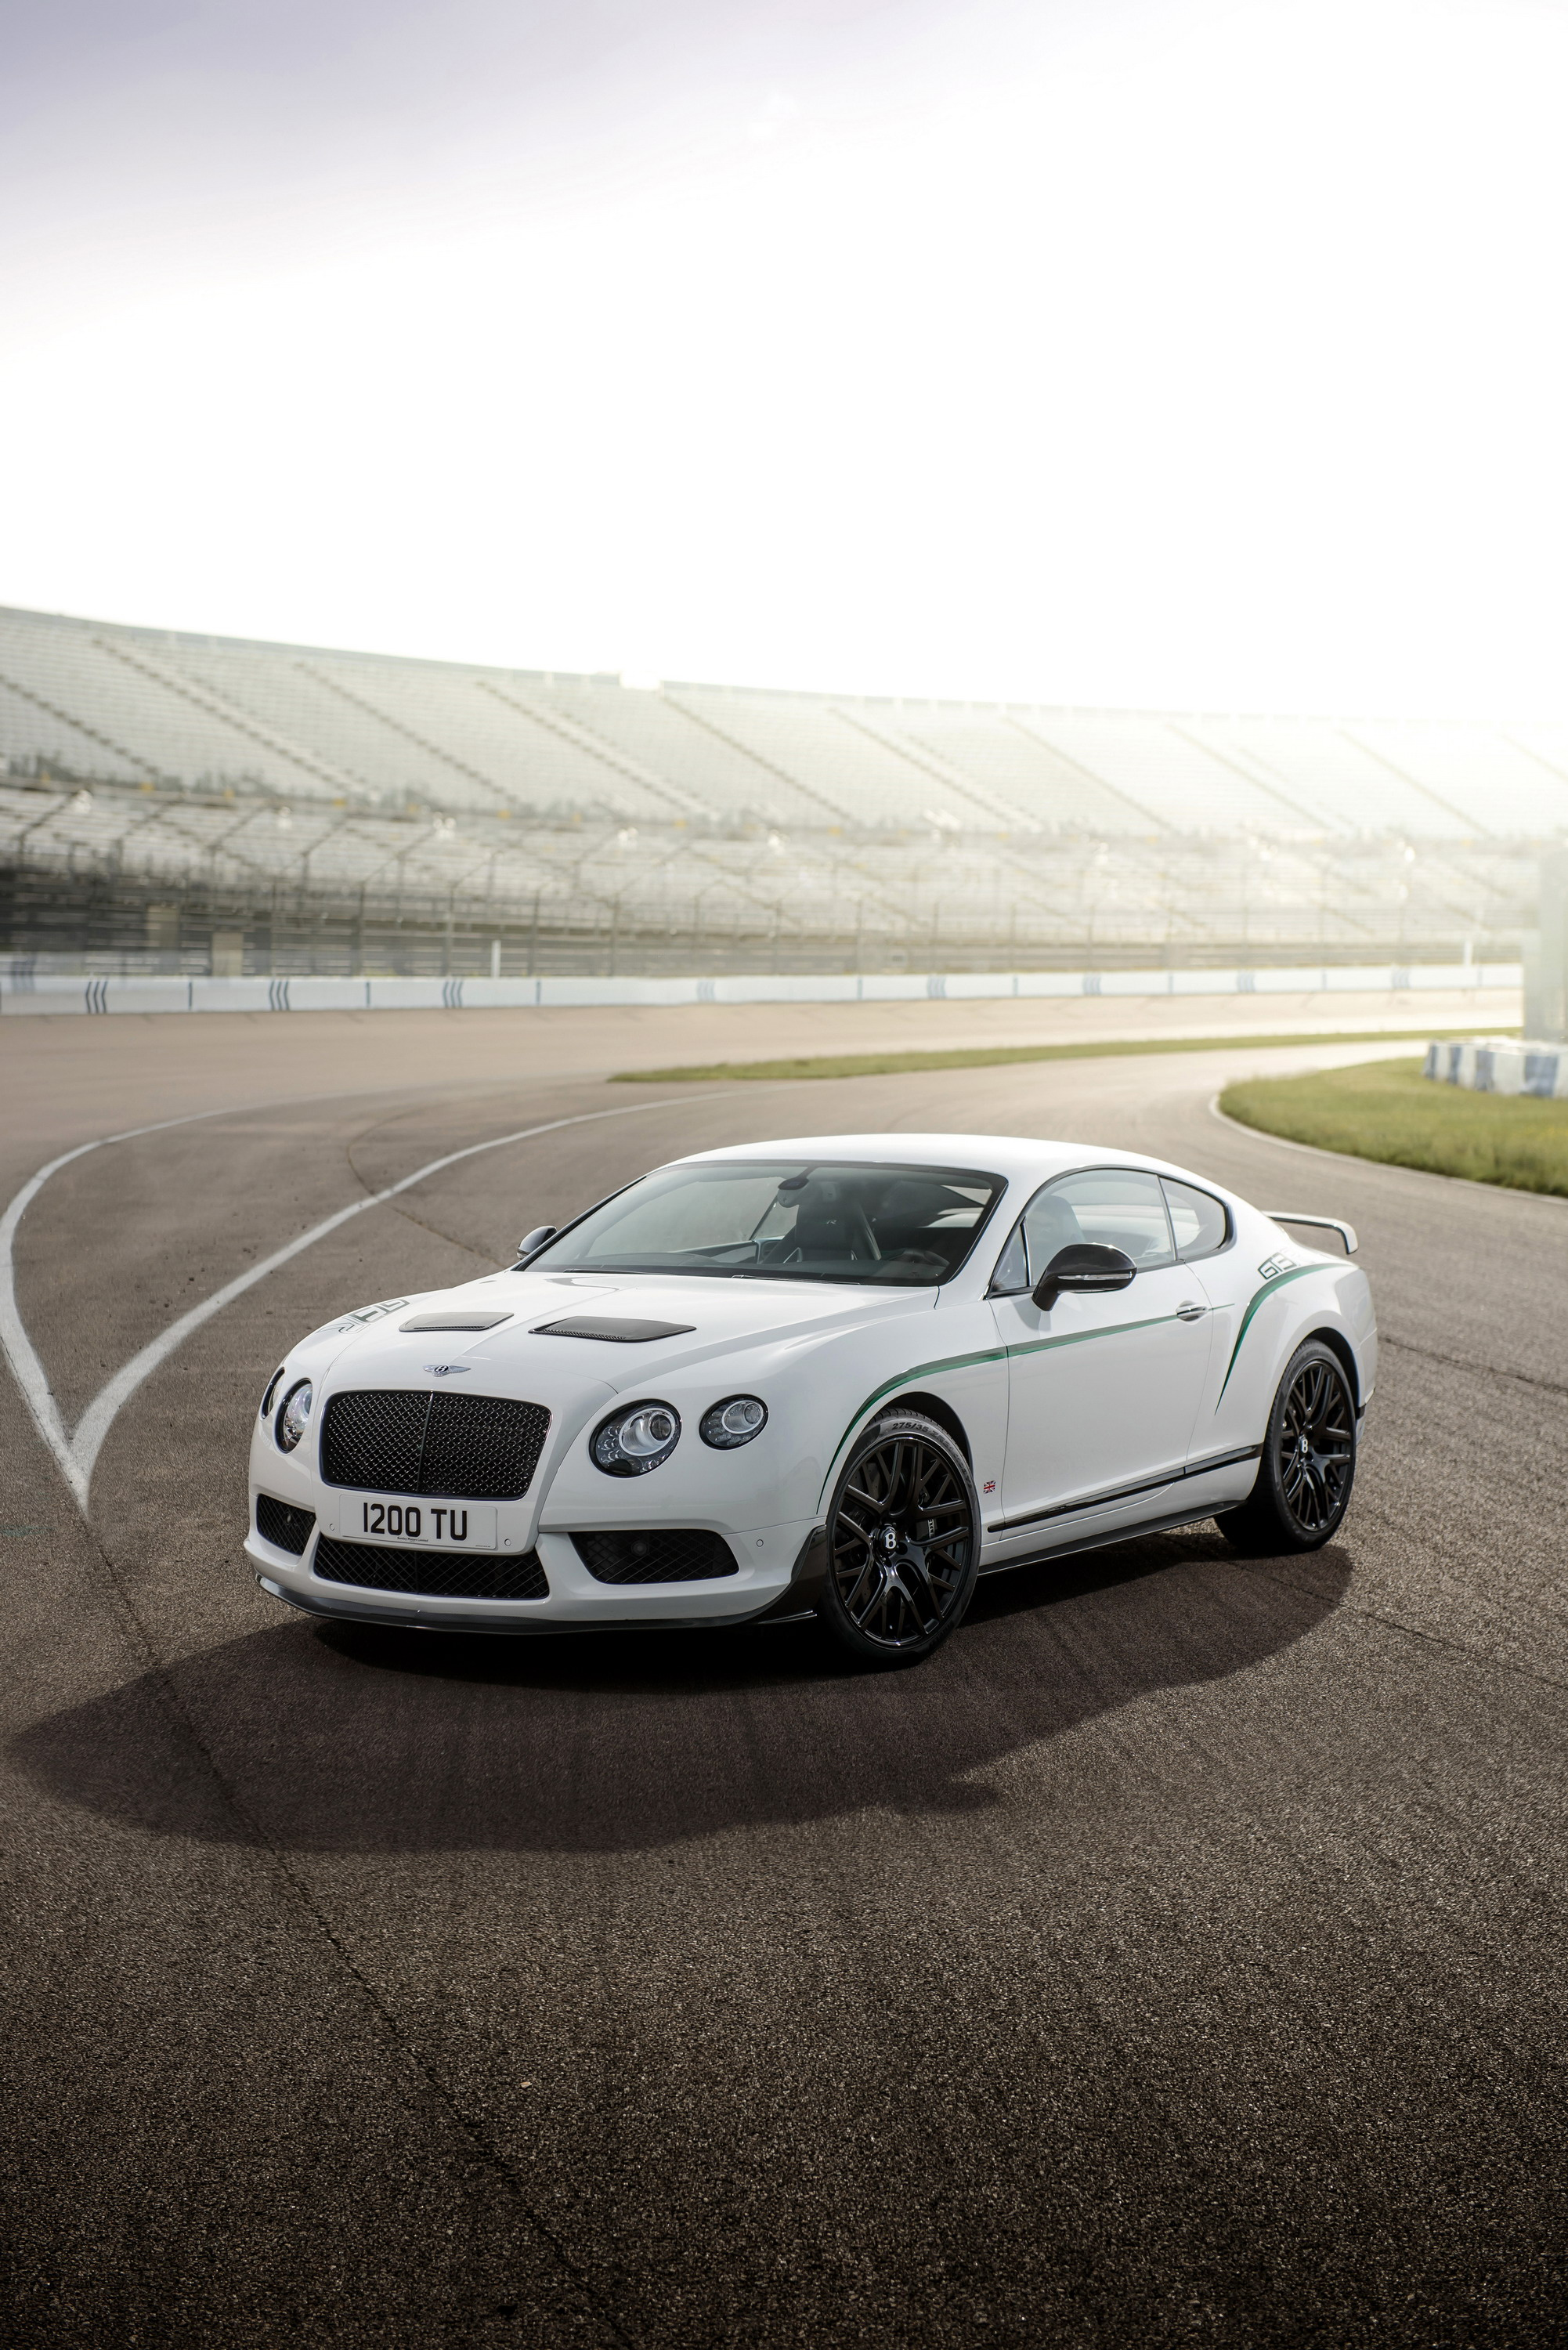 used coupe bentley cars sale supersports for australia continental on richmond jamesedition in